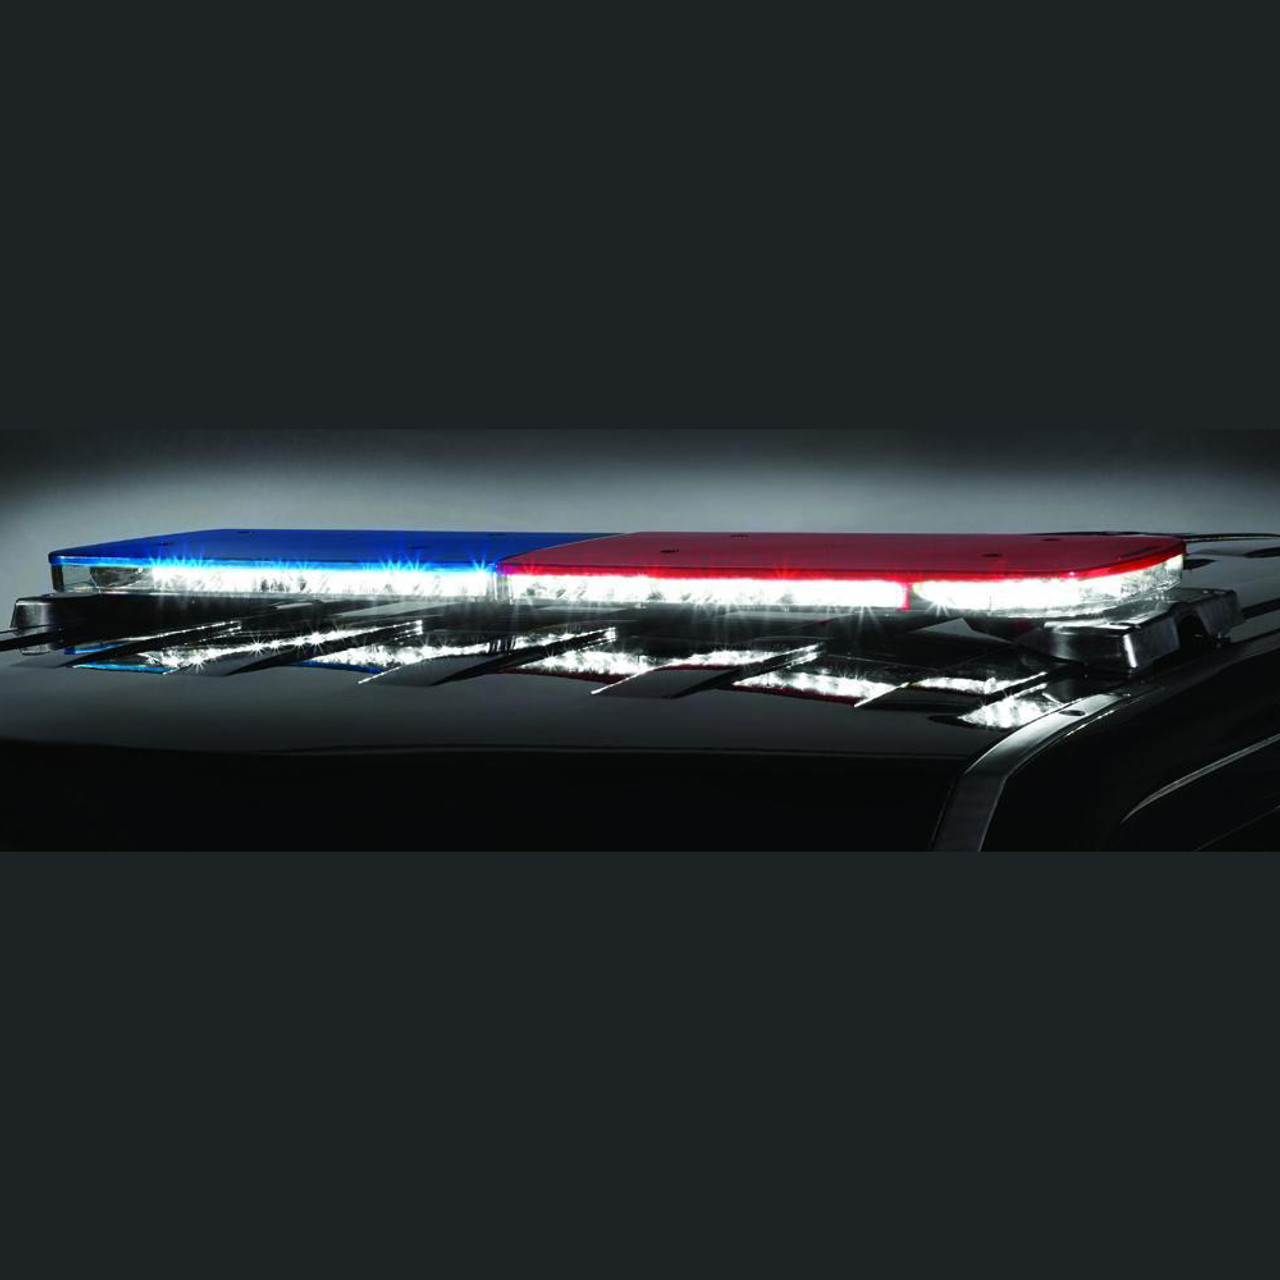 hight resolution of federal signal allegiant light bar 45 or 53 inch model dual color light bar